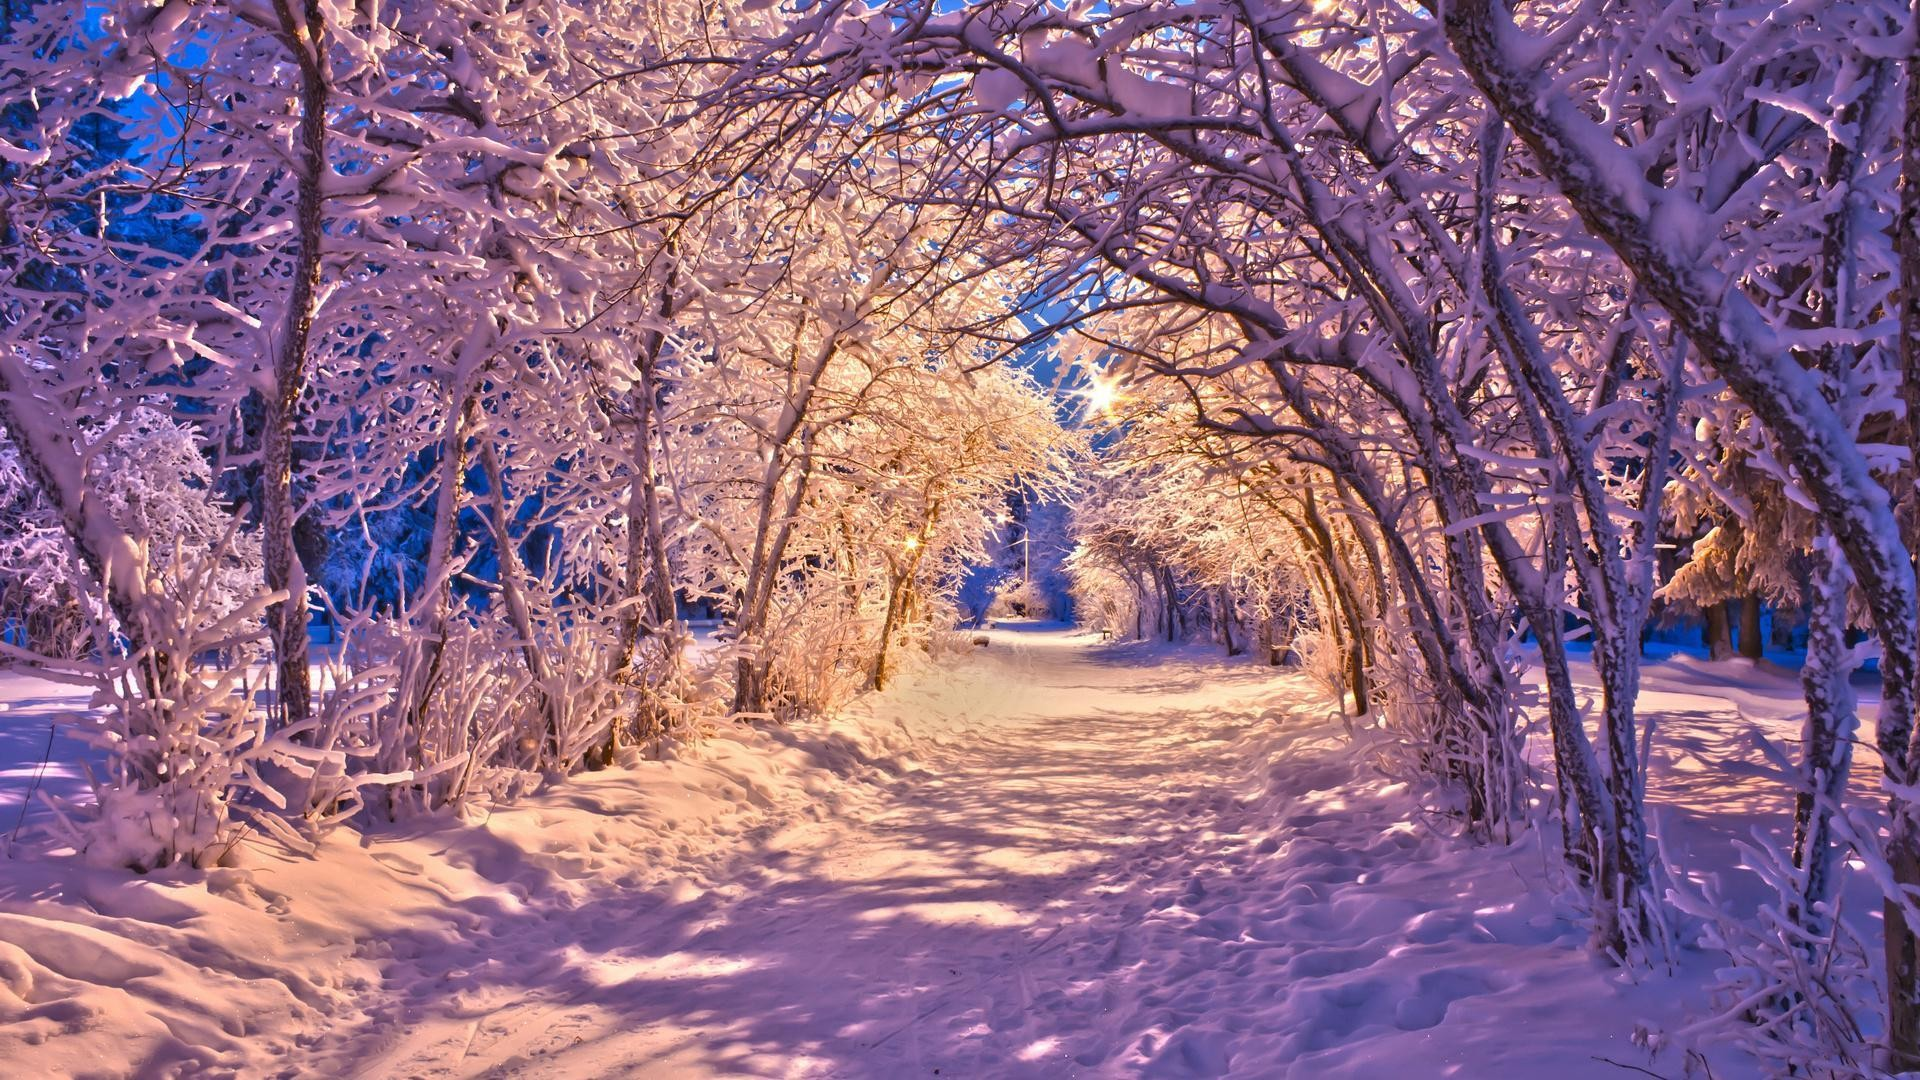 Desktop Wallpaper Winter Landscapes 46 Images